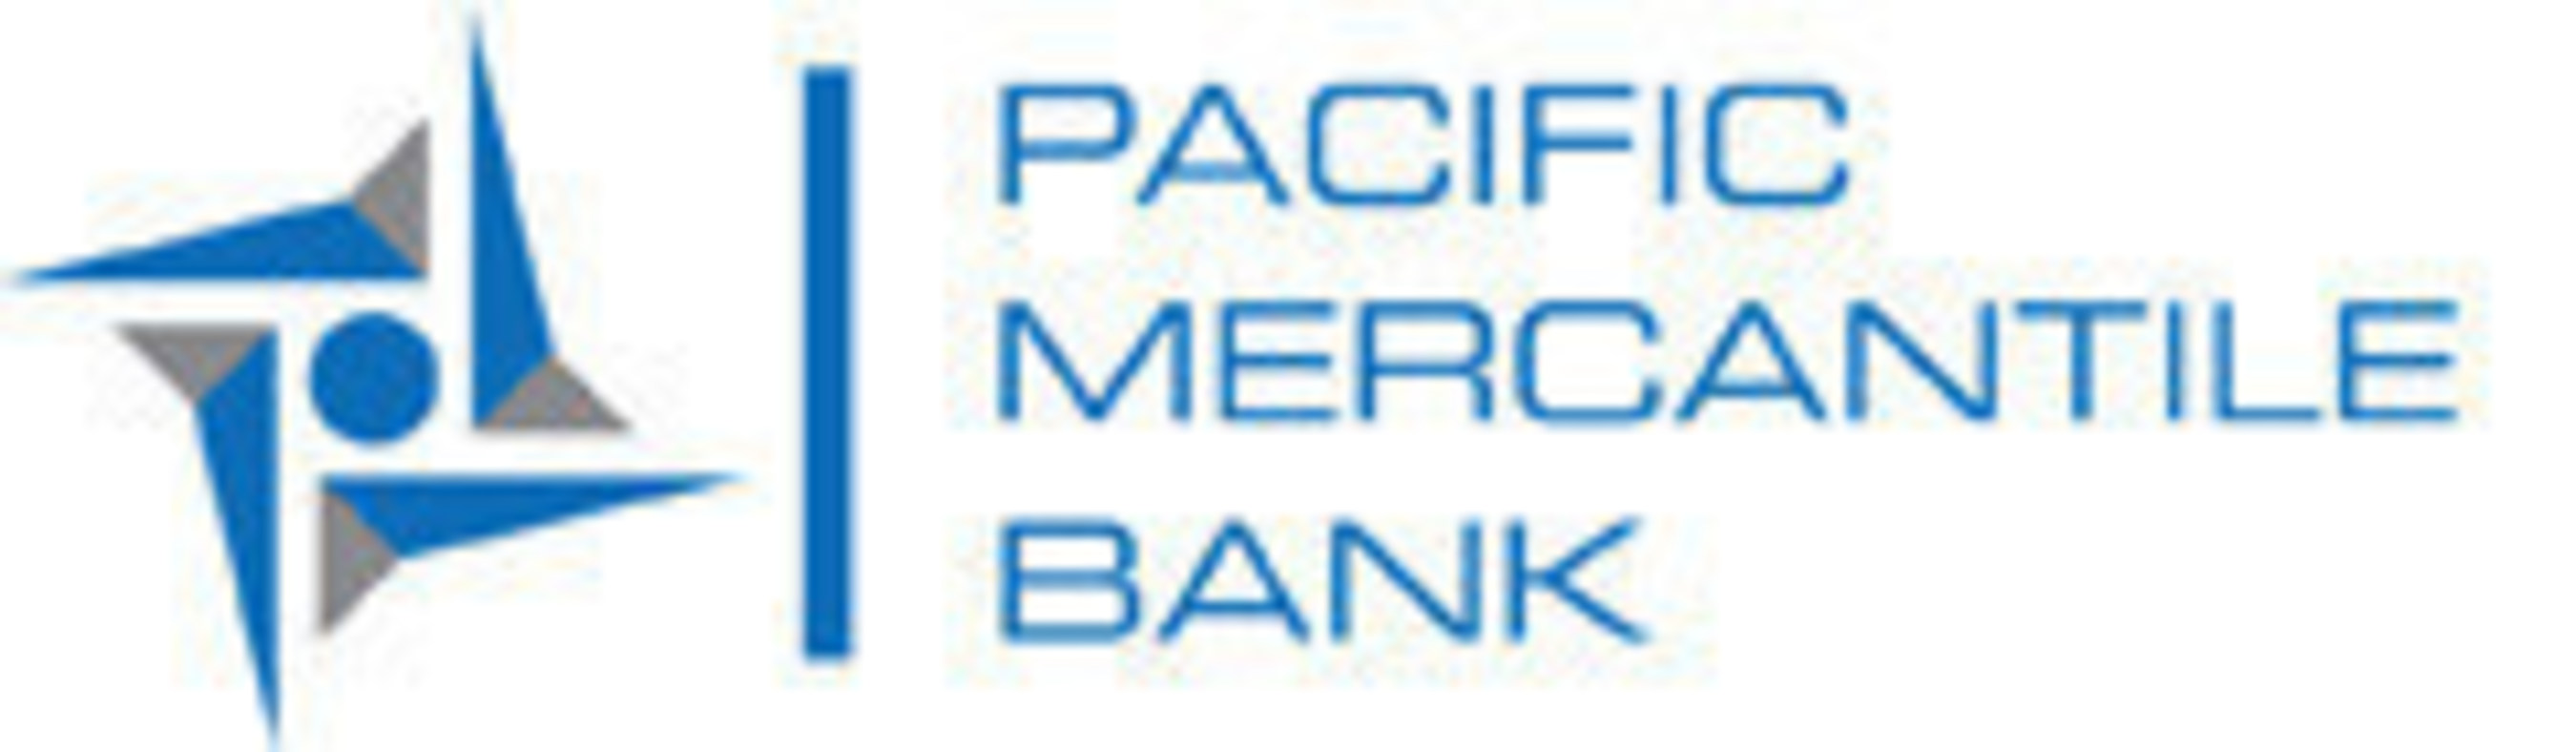 Pacific Mercantile Bank-Financed Feature MOMENTUM Starring Olga Kurylenko and James Purefoy Acquired by Starz